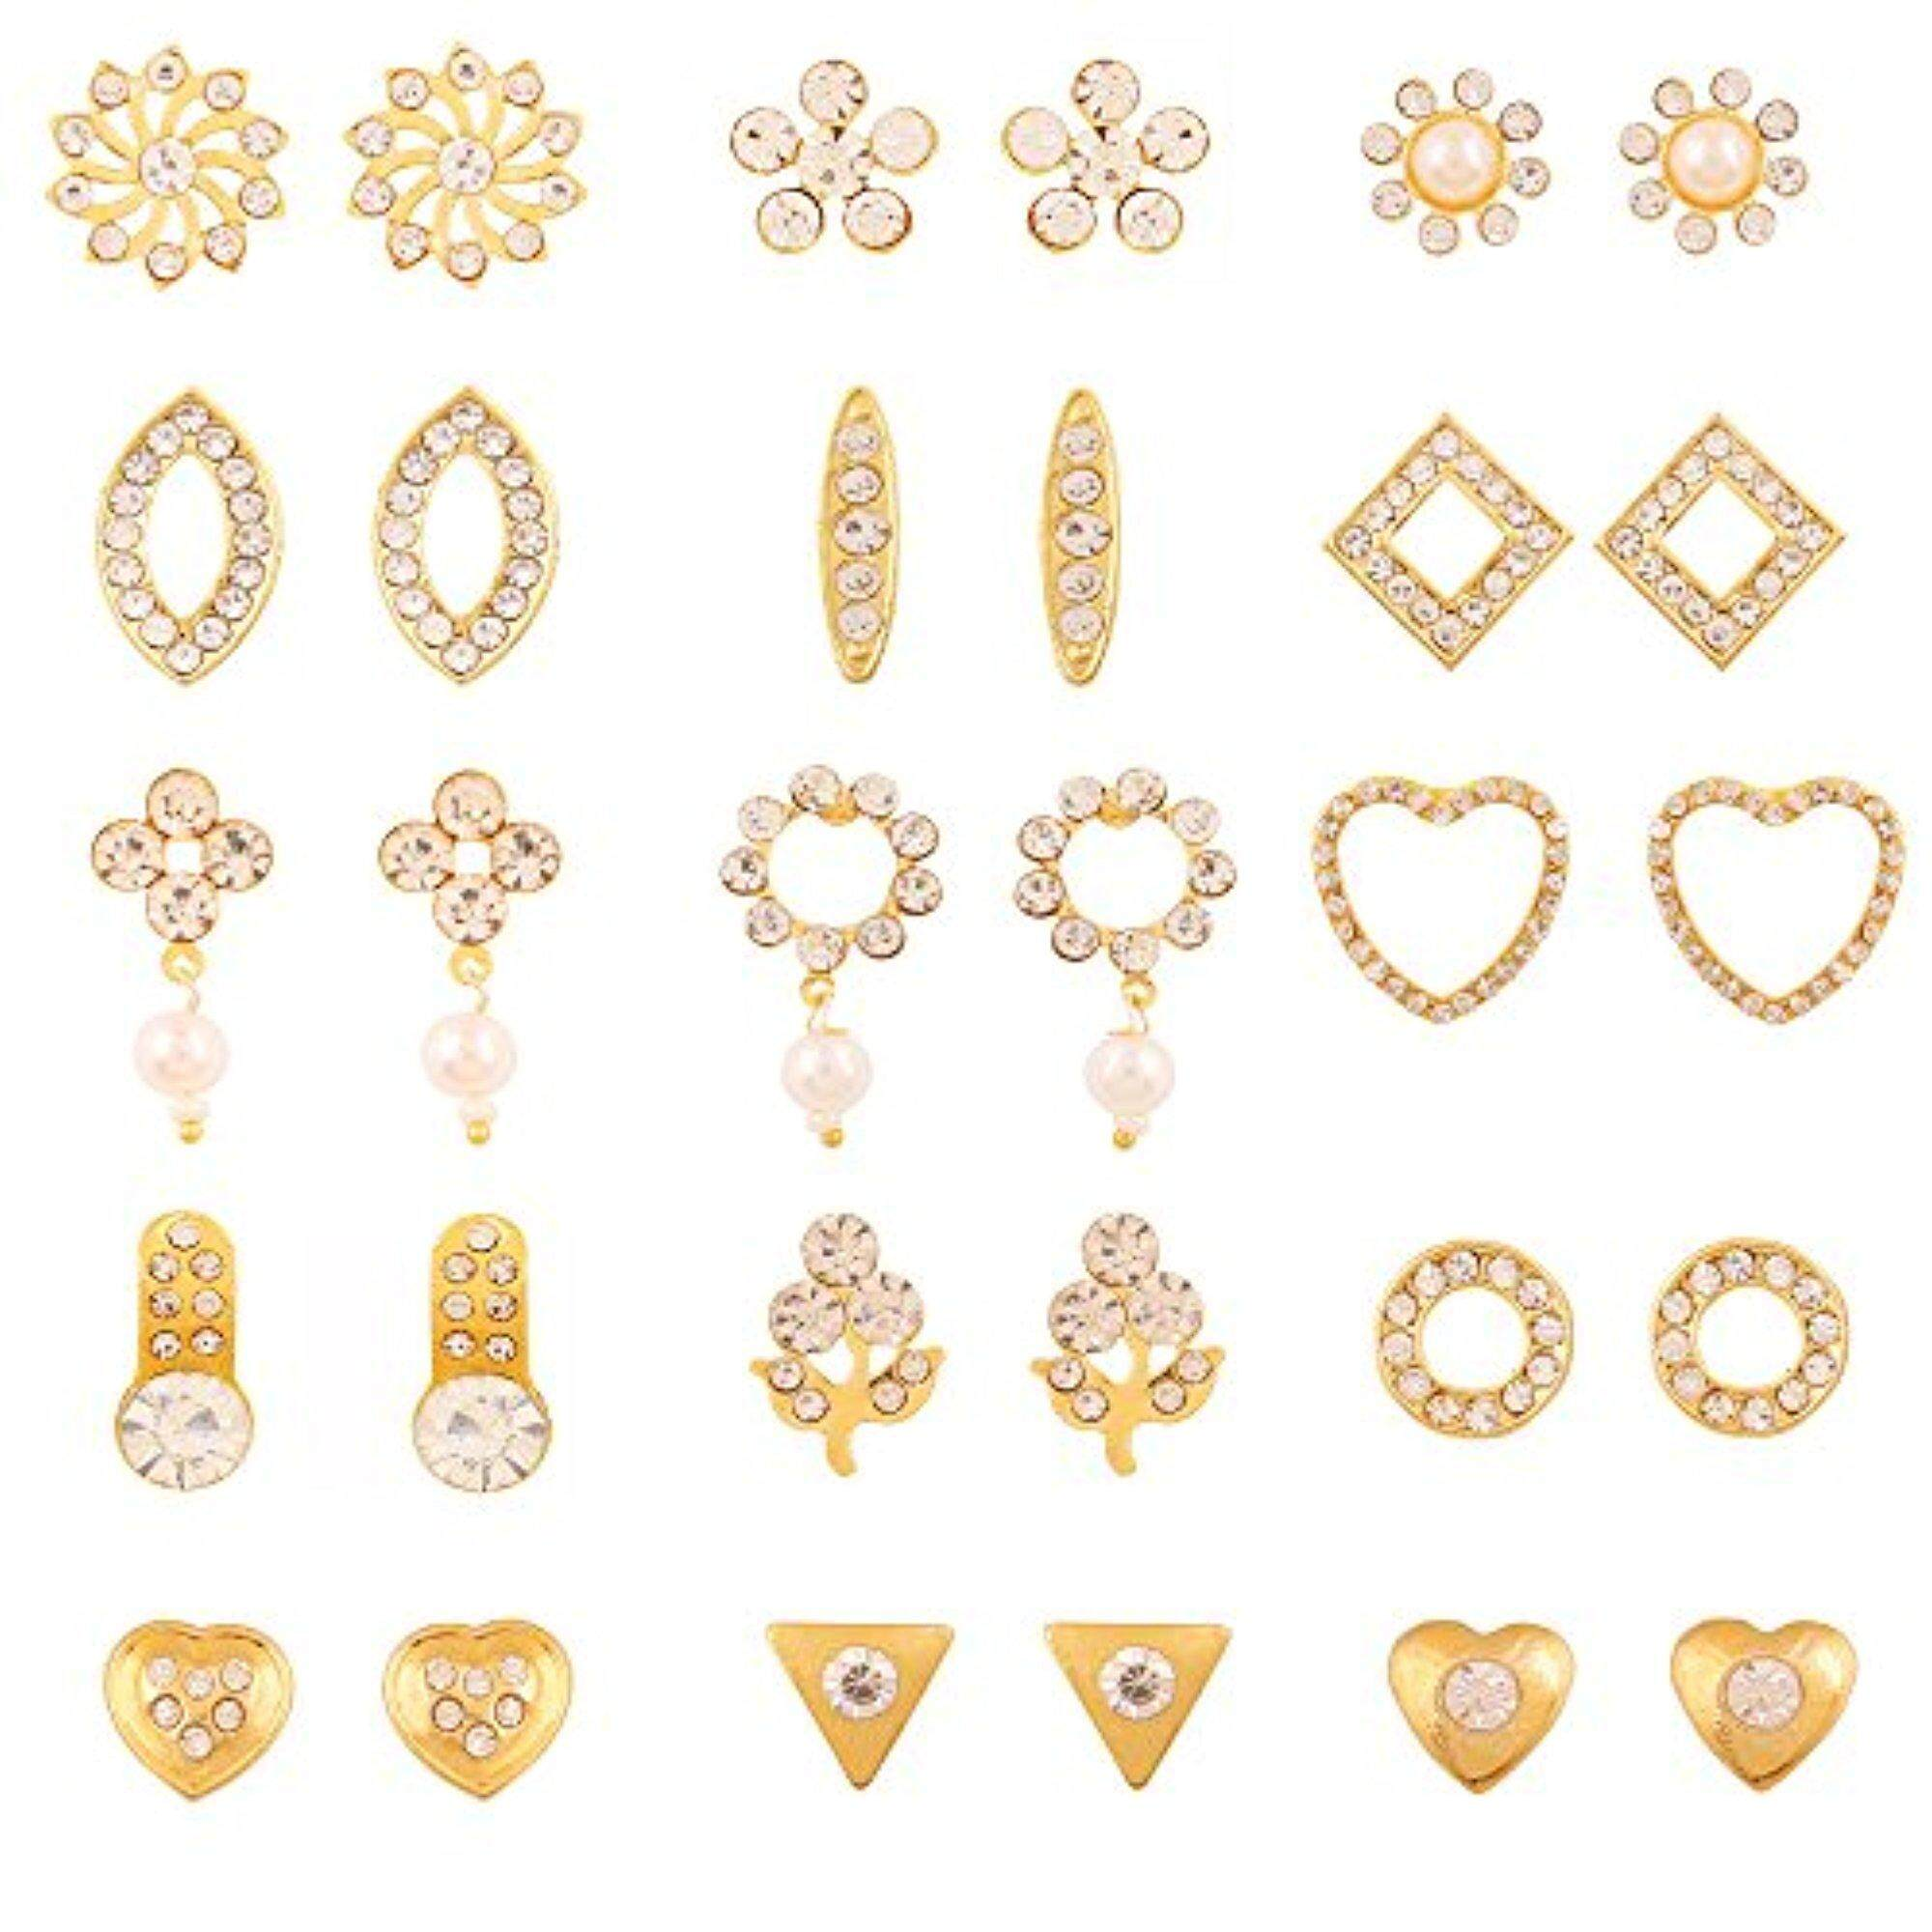 ct wear real workwear designs certified diamond pin earrings gold daily solid